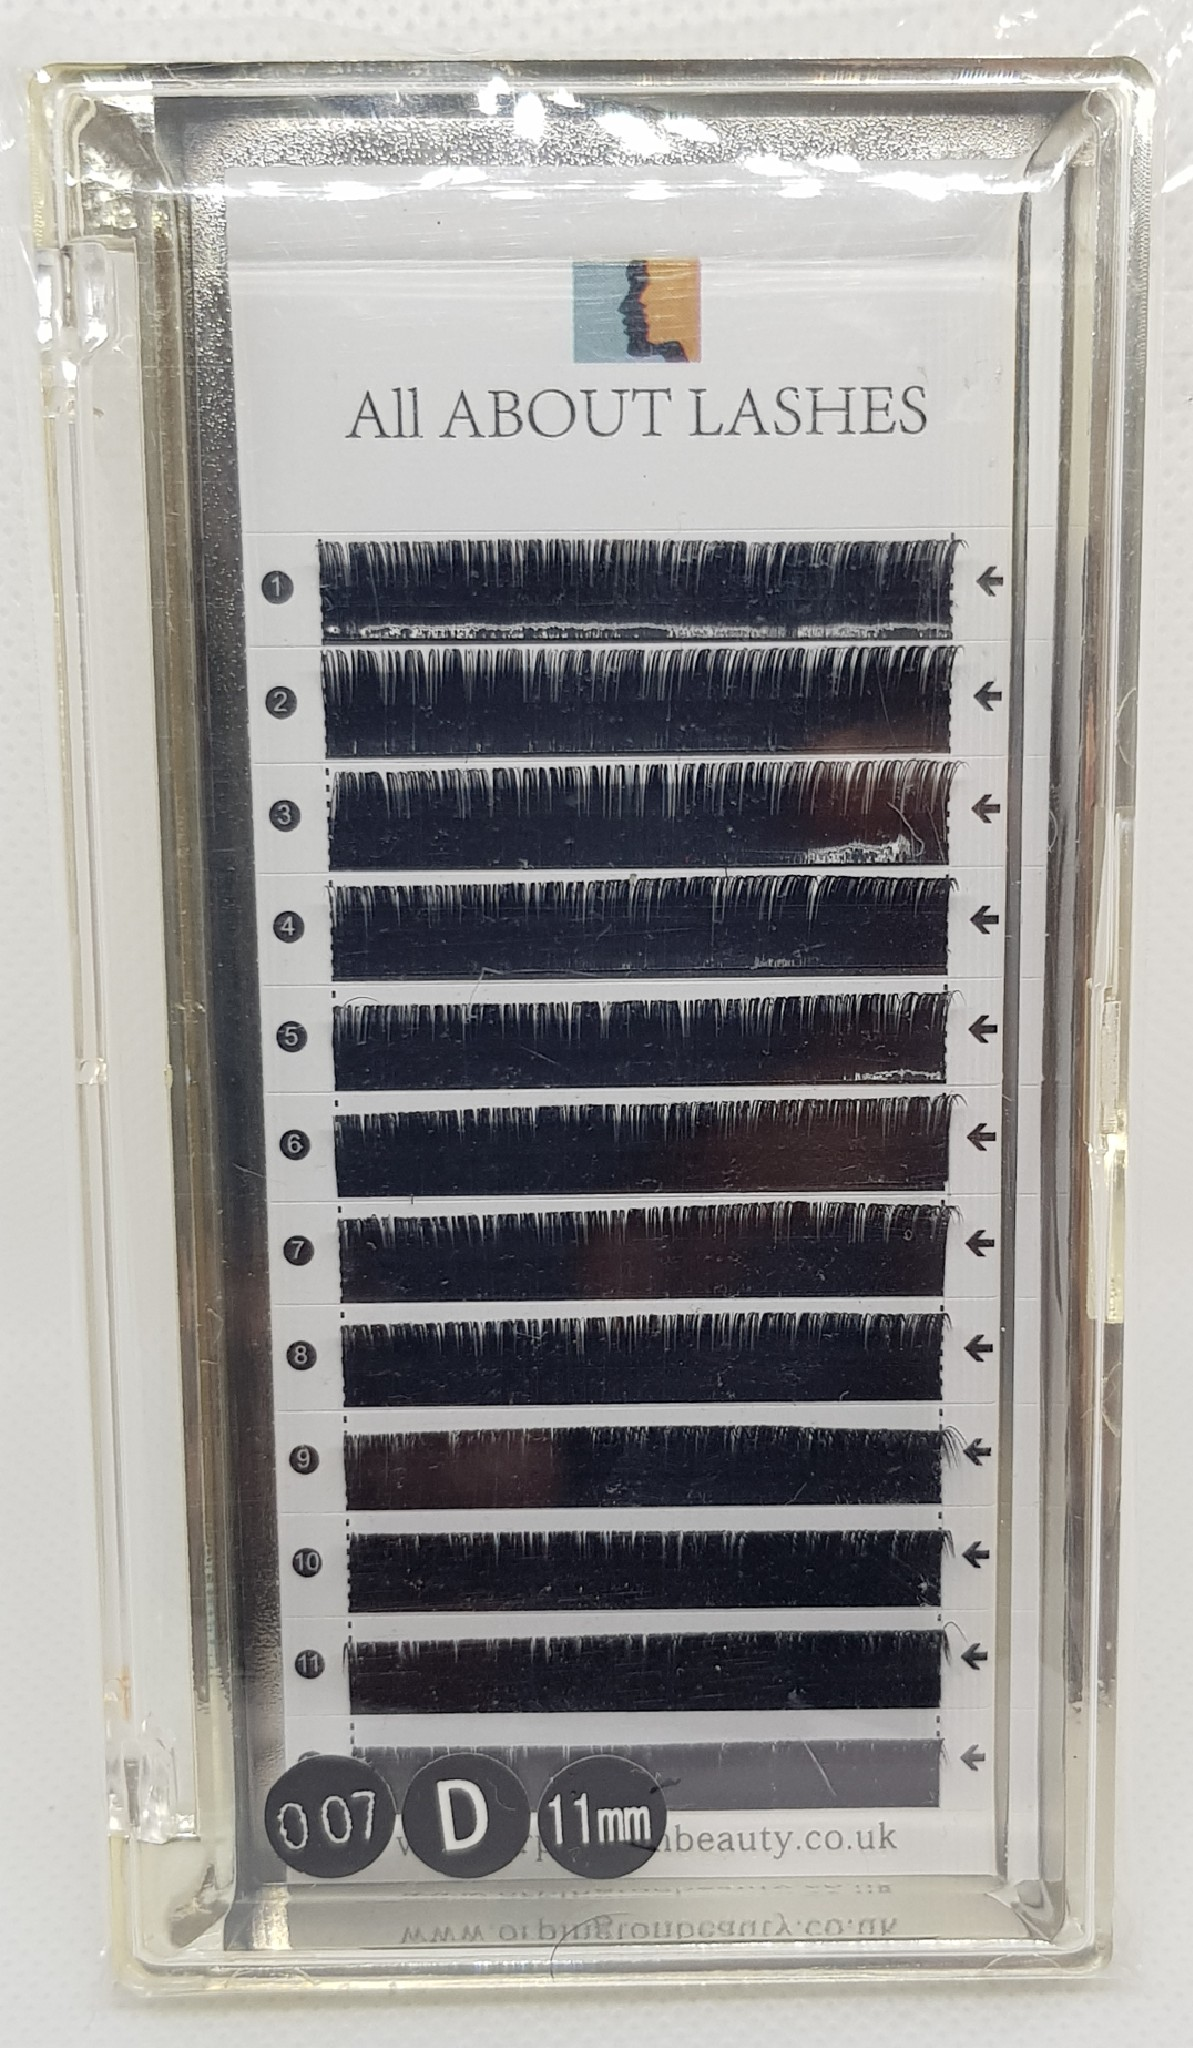 All About Lashes D Curl 0 07mm Russian Volume 11mm